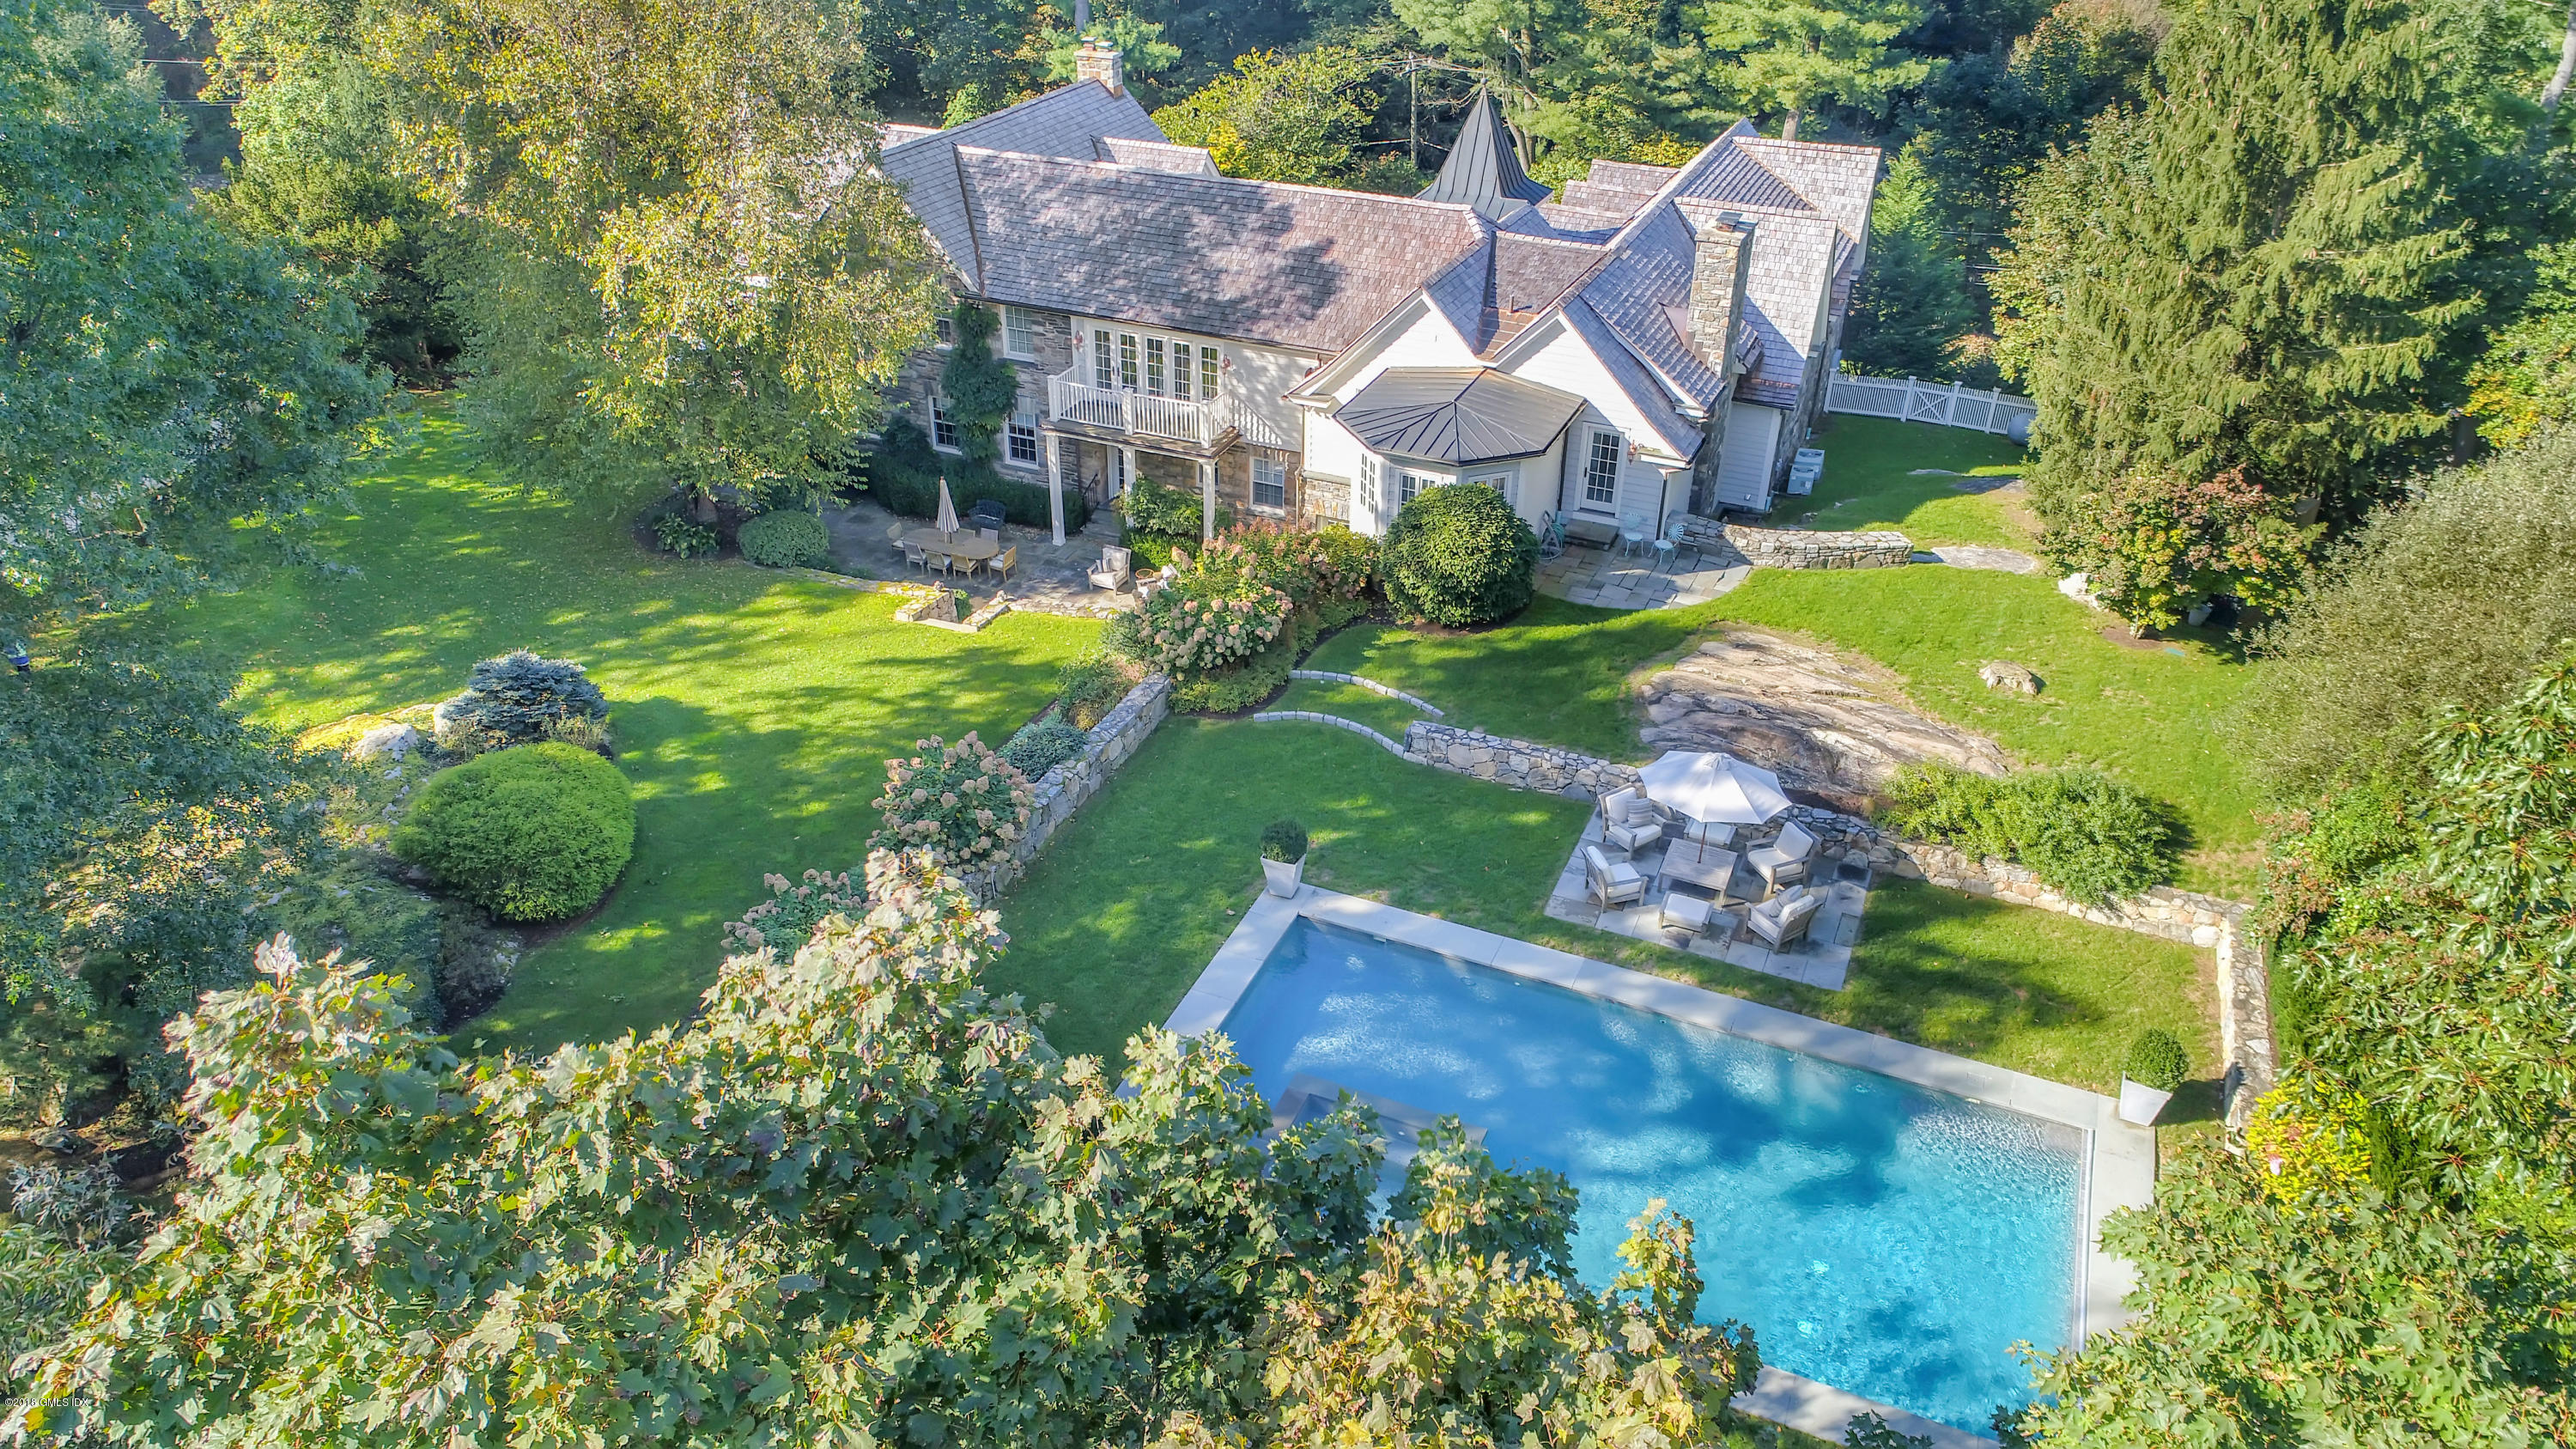 135 Doubling Road,Greenwich,Connecticut 06830,6 Bedrooms Bedrooms,5 BathroomsBathrooms,Single family,Doubling,104444